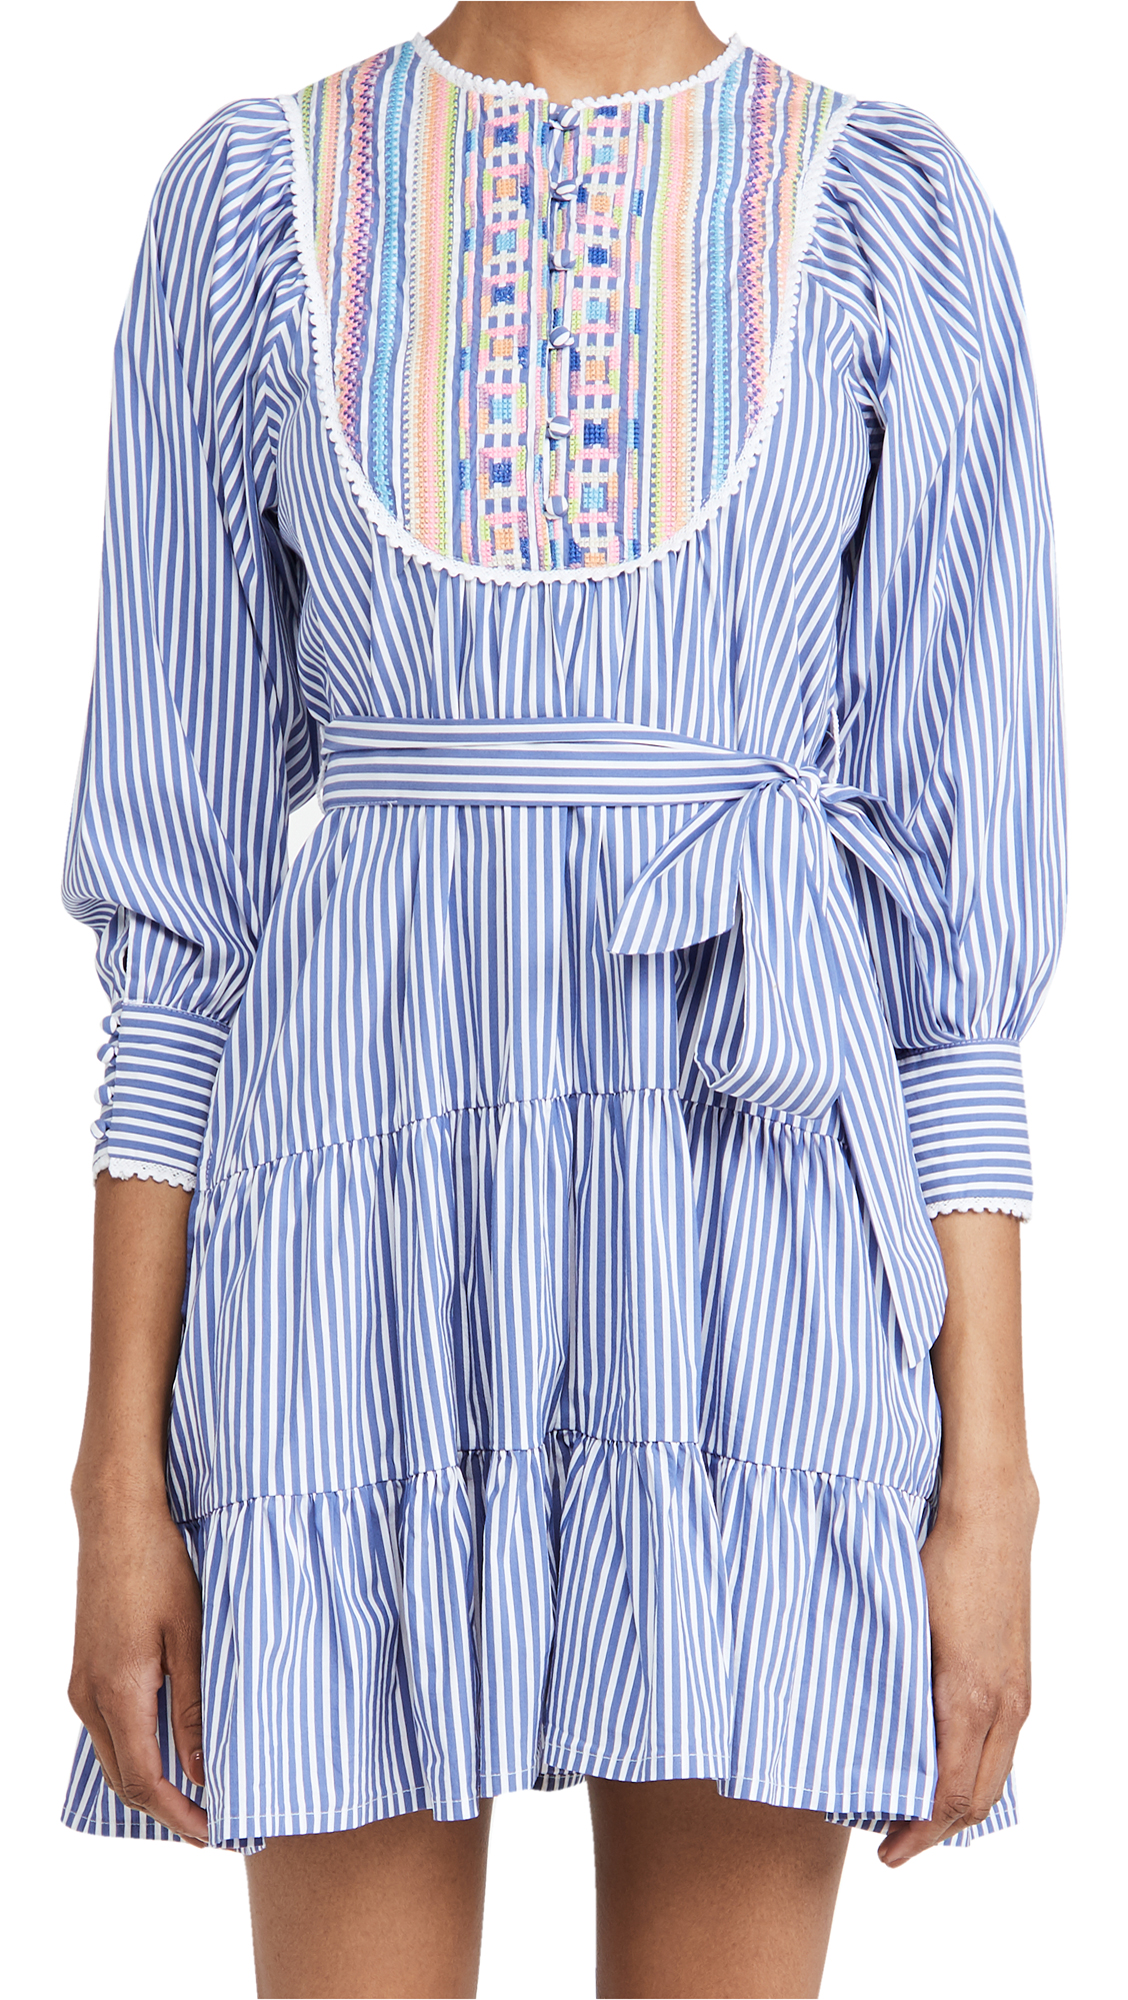 Tanya Taylor Elaia Embroidered Yoke Pinstripe Long Sleeve Dress In Blue/ White Stripe